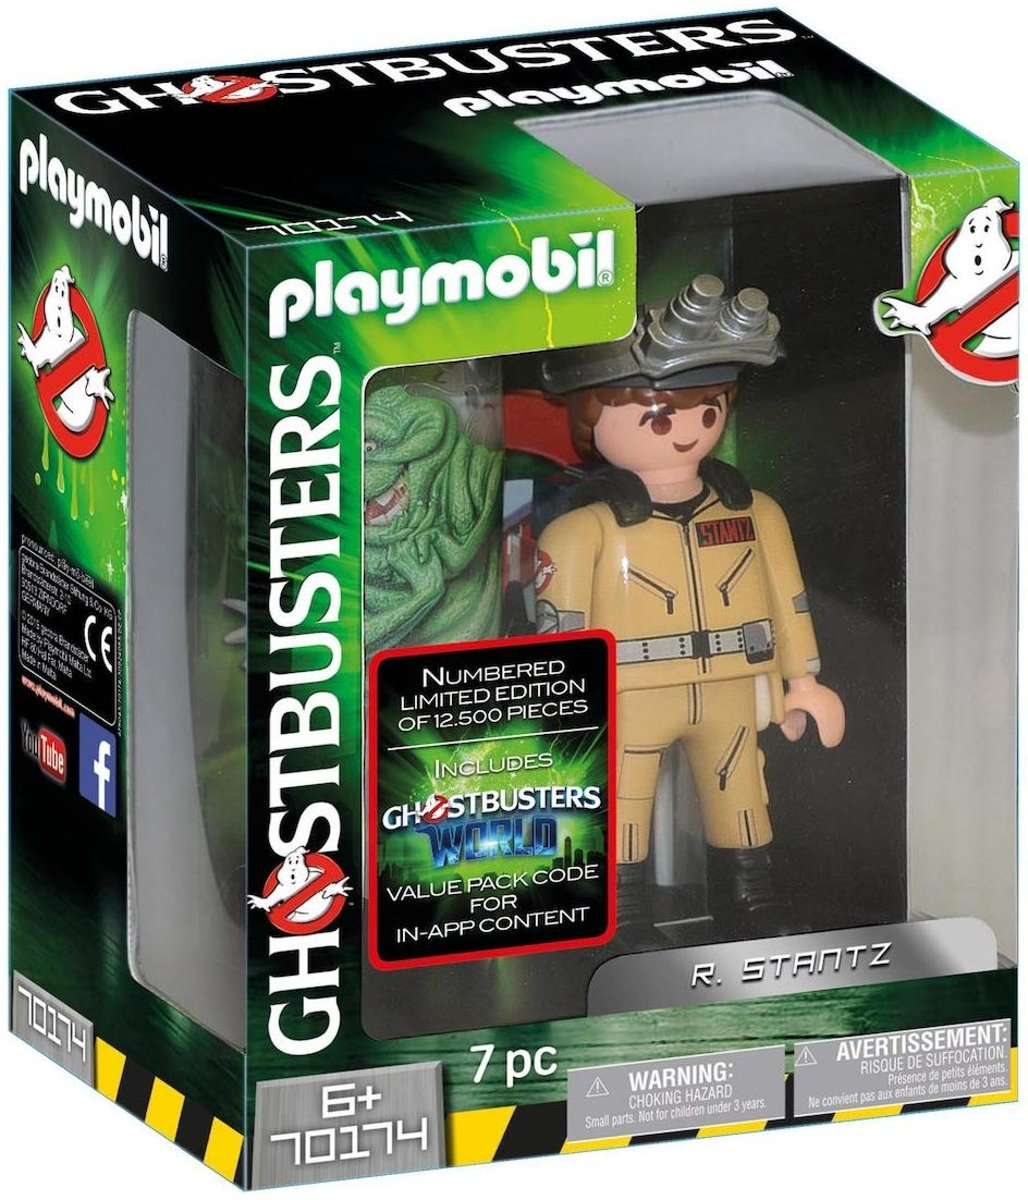 Ghostbusters™ Collectors Edition R. Stantz, Ghostbusters™/Ghostbusters™ Edition Collector R. Stantz